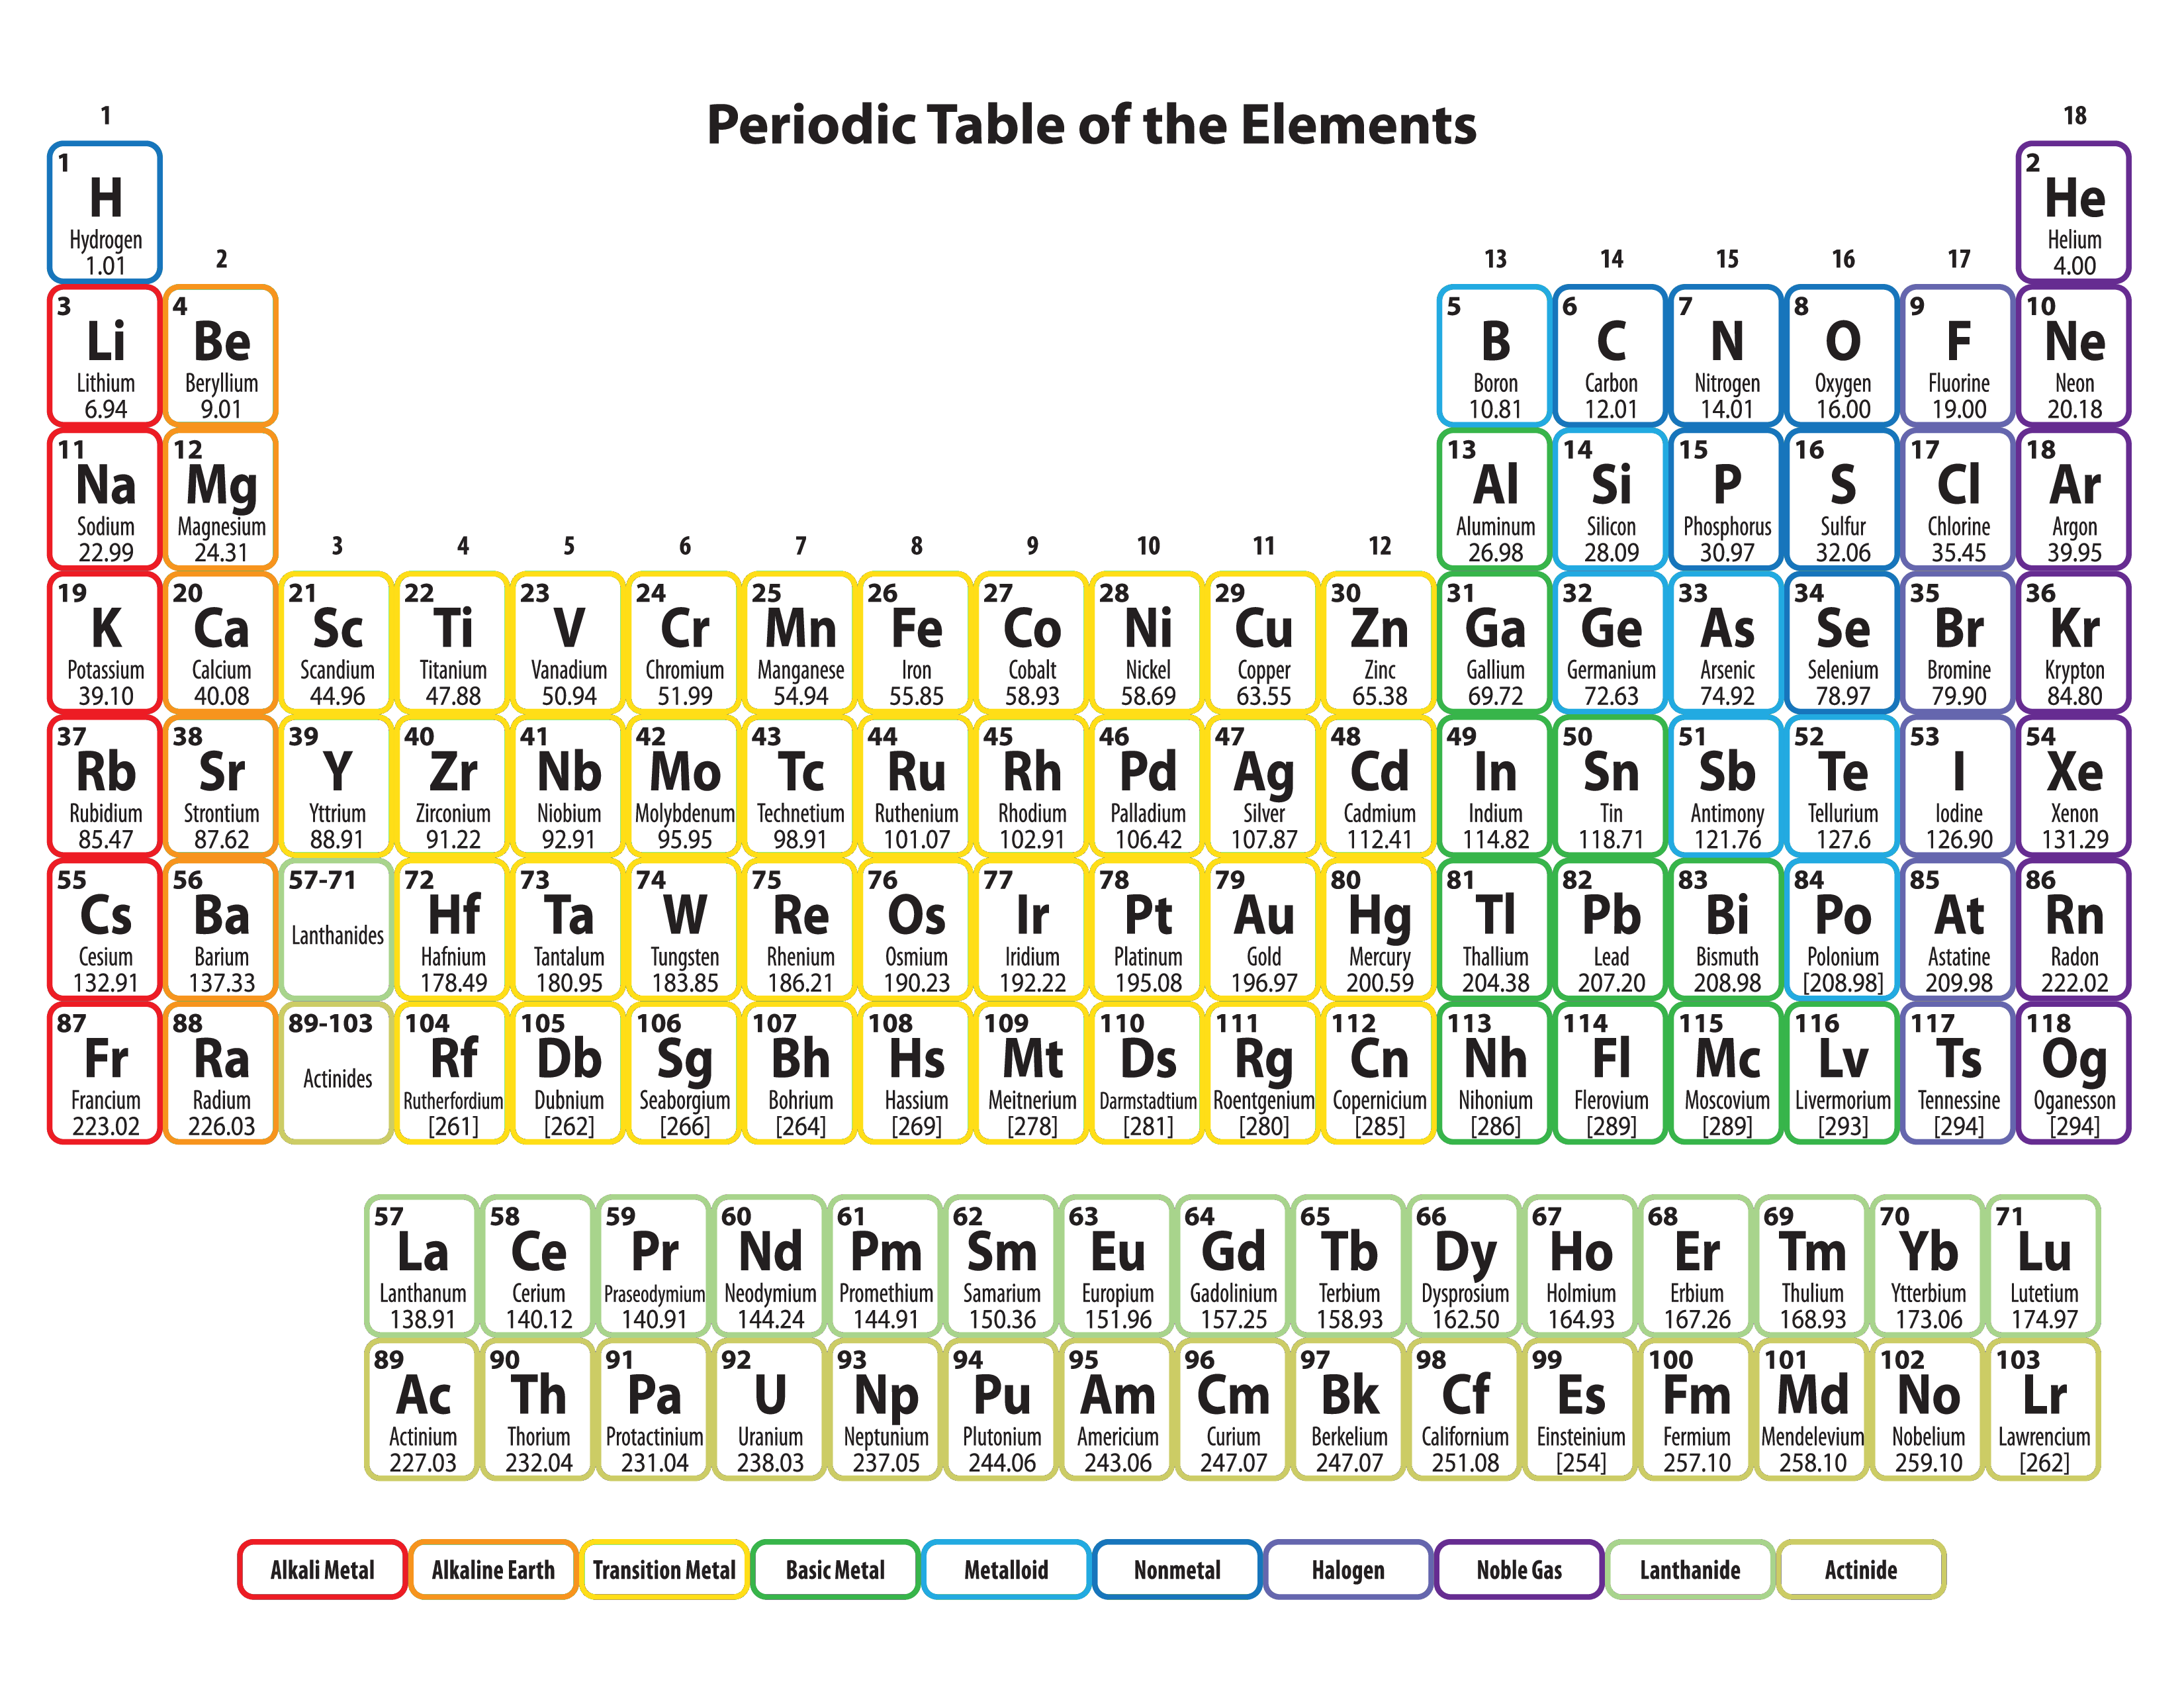 Are You Looking For The Periodic Table Of Elements